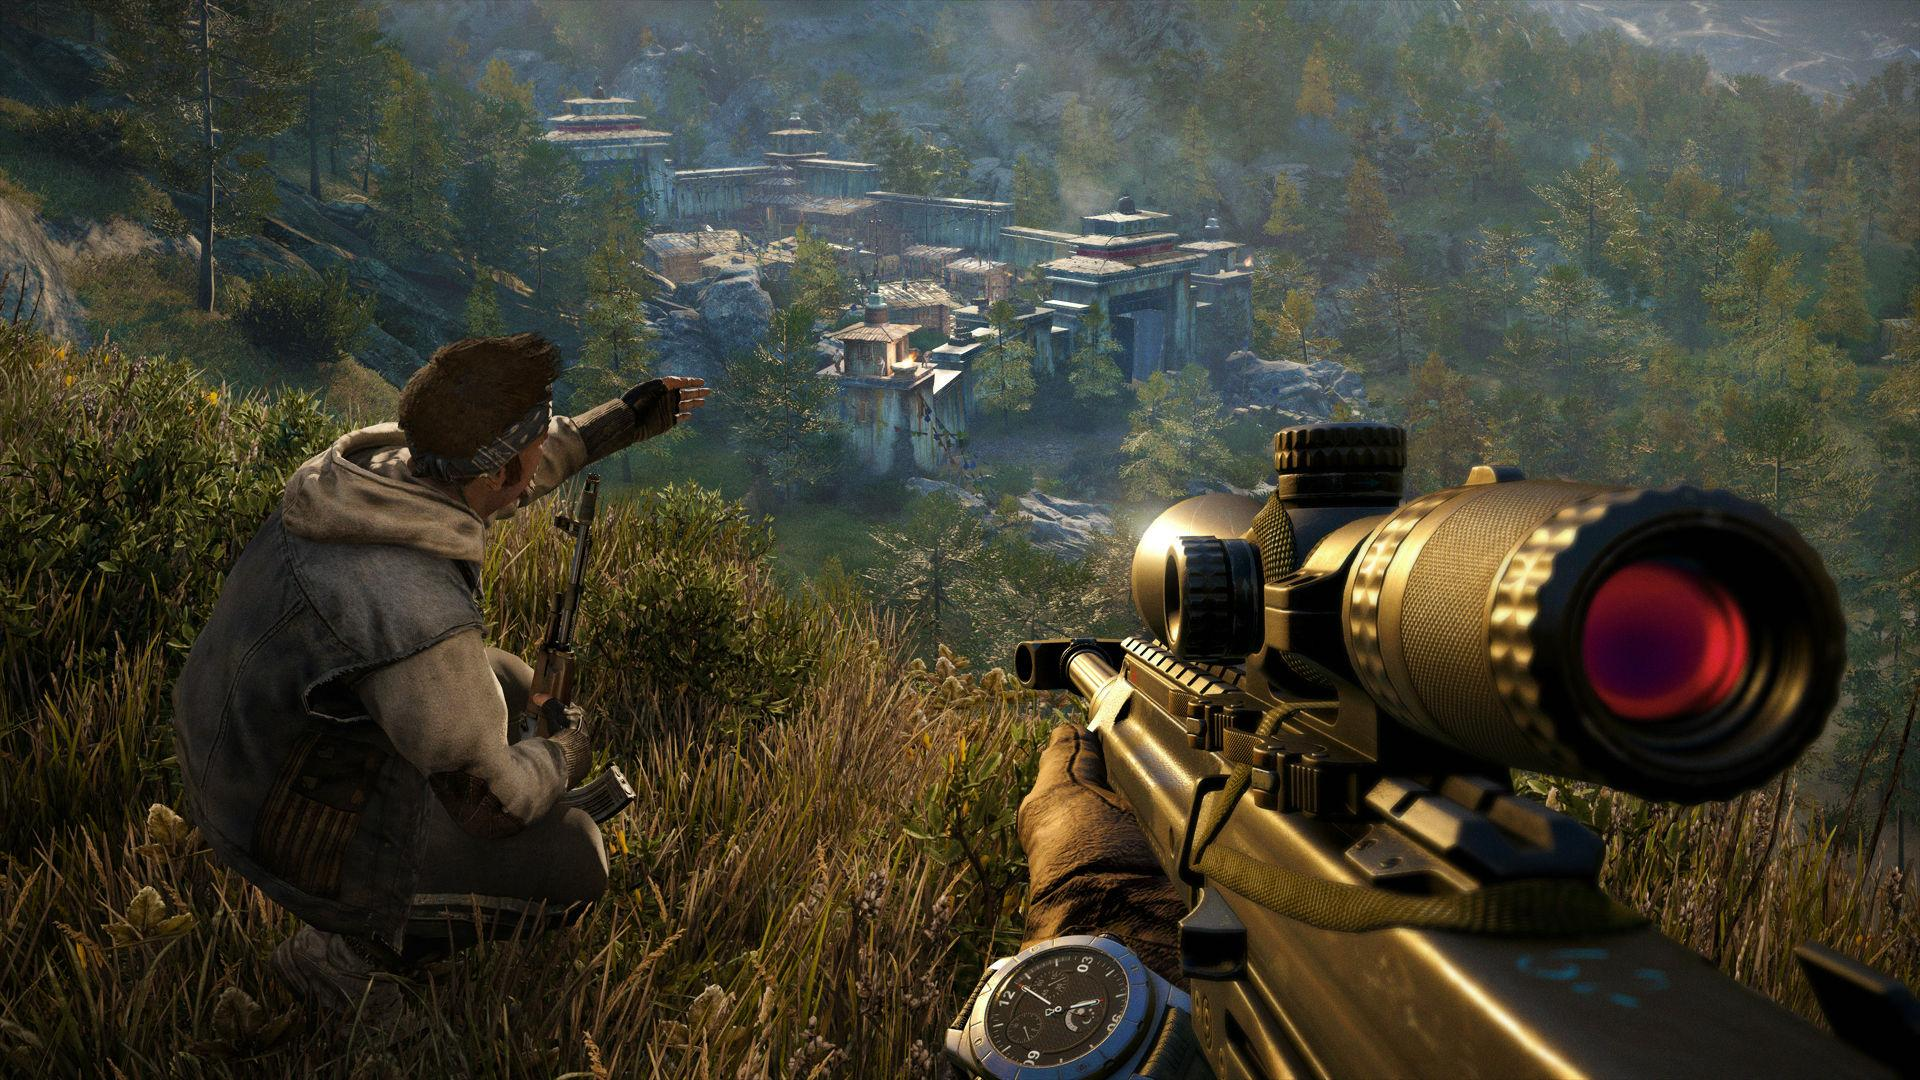 Outpost in Far Cry 4